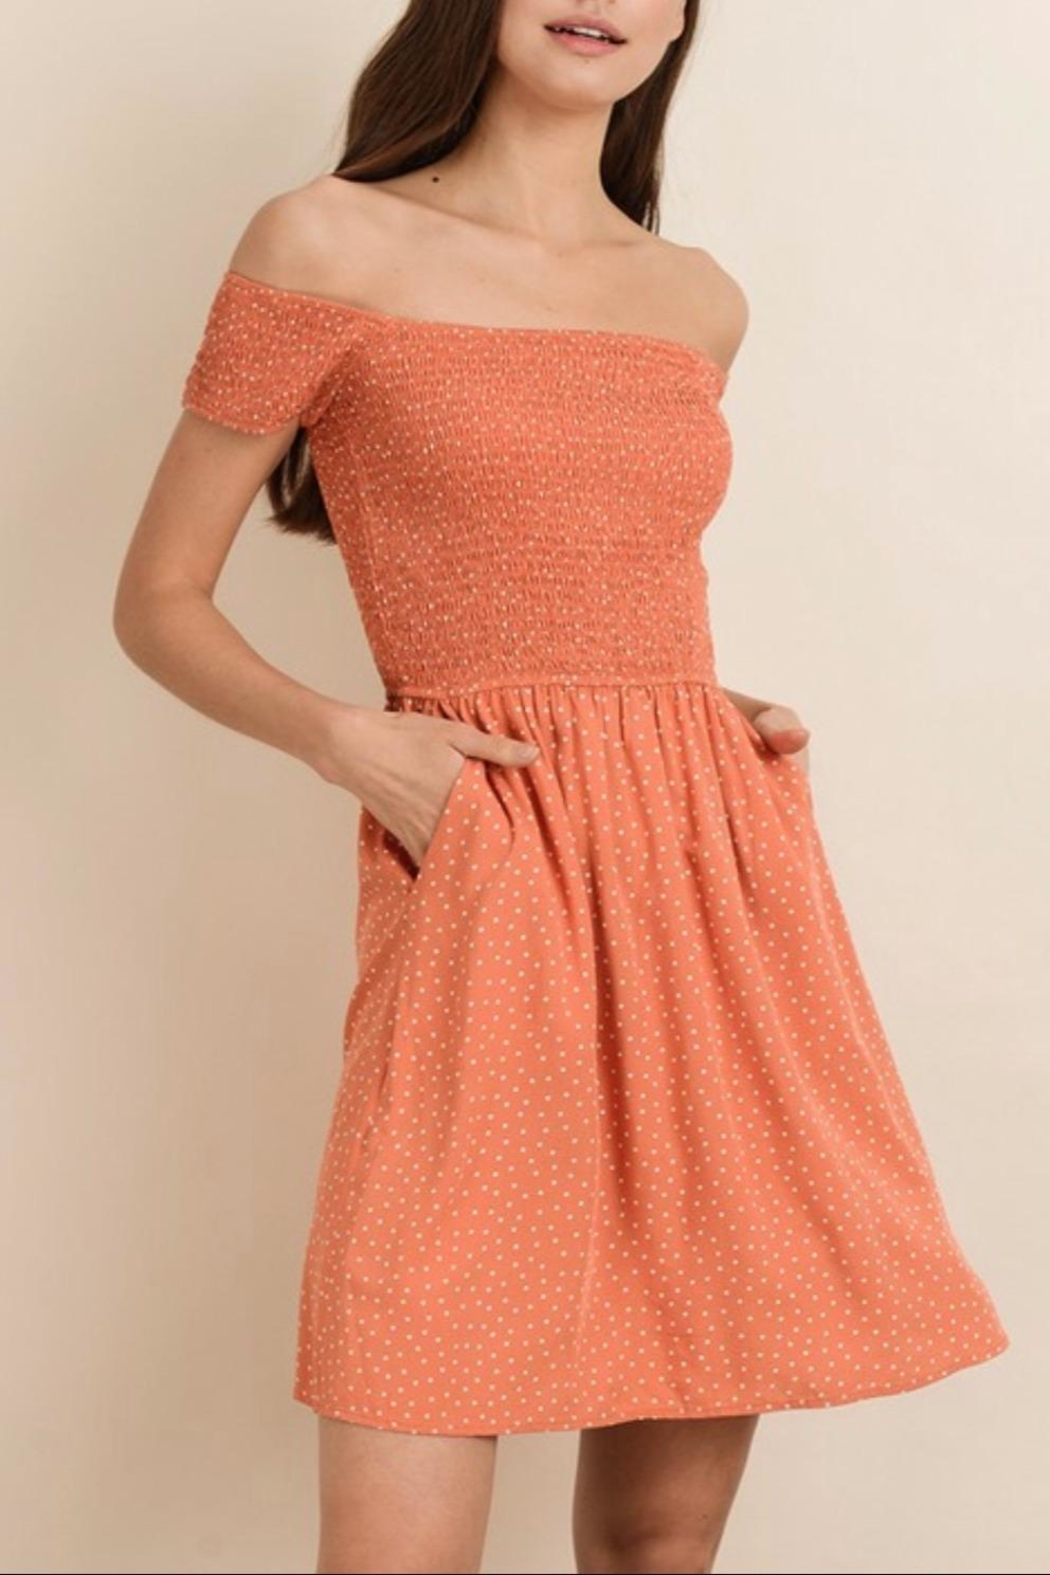 bd6dd002a01ee7 dress forum Polka Dot Dress from Wisconsin by Apricot Lane ...